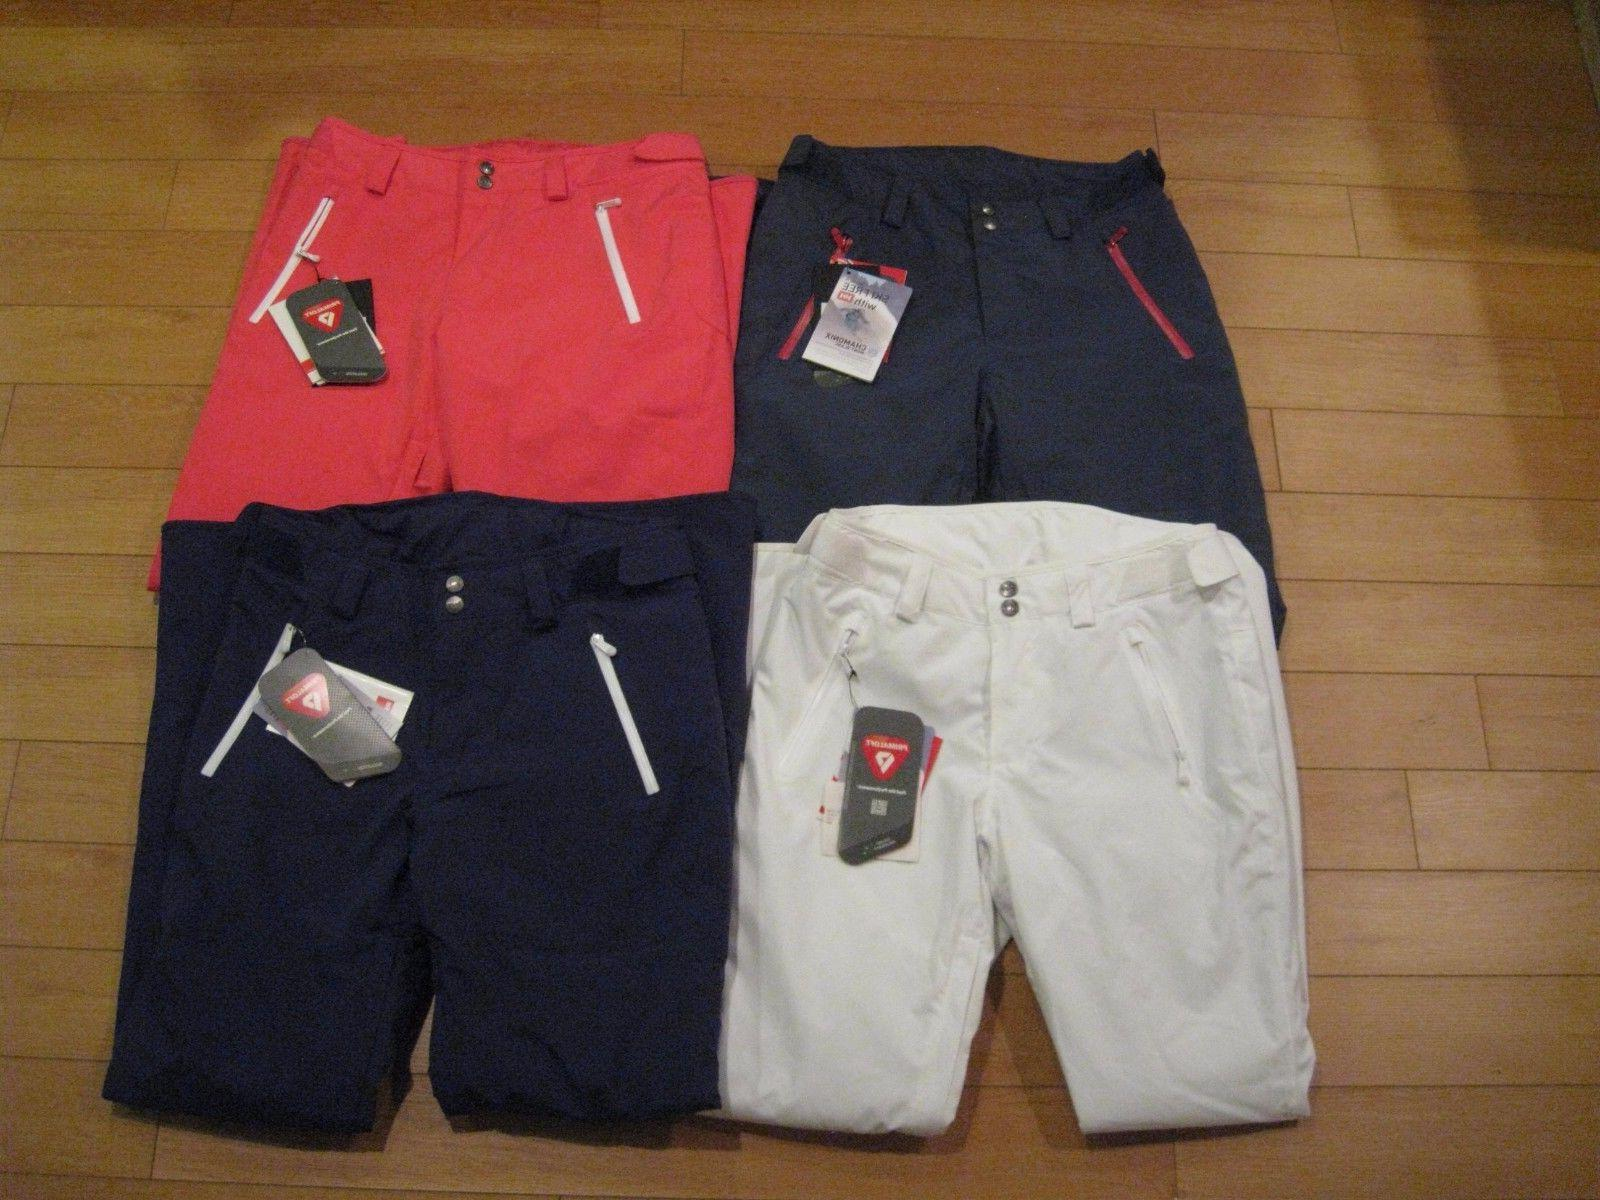 NWT Womens Helly Hansen Performance Primaloft Ski Pants